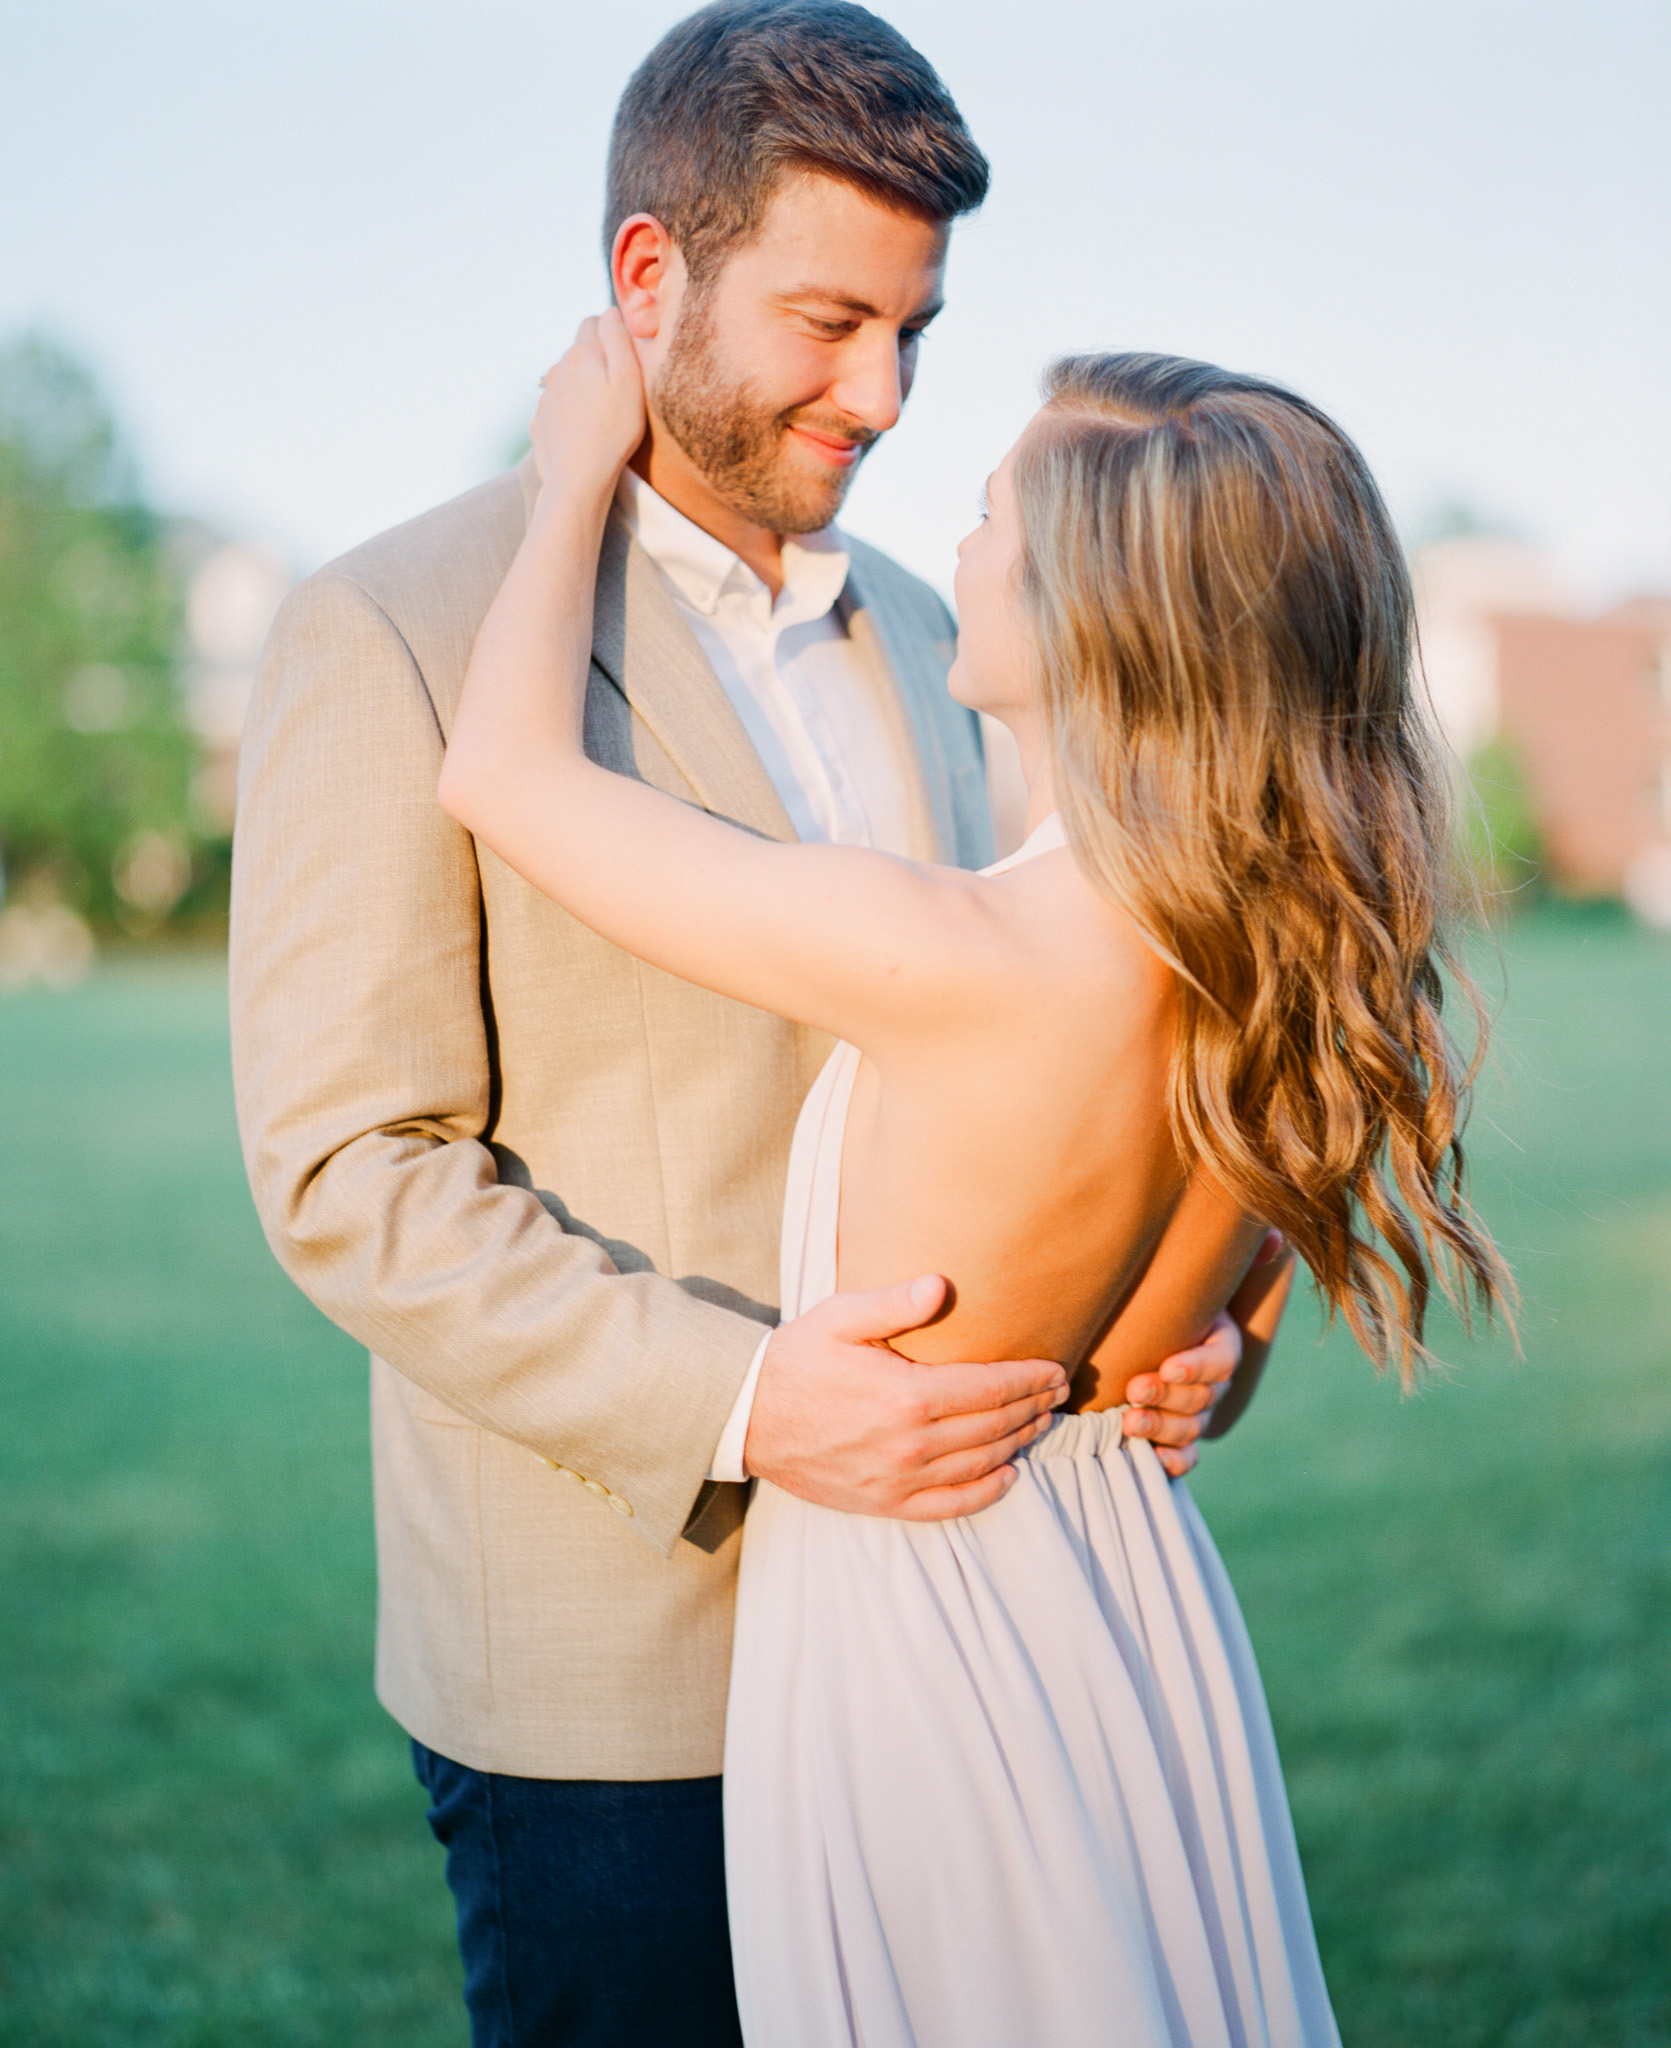 Film photograph from a Pentax 67 with 105mm 2.4 taken of couple romanctically embracing one another at Southern Baptist Theological Seminary during their engagement session.